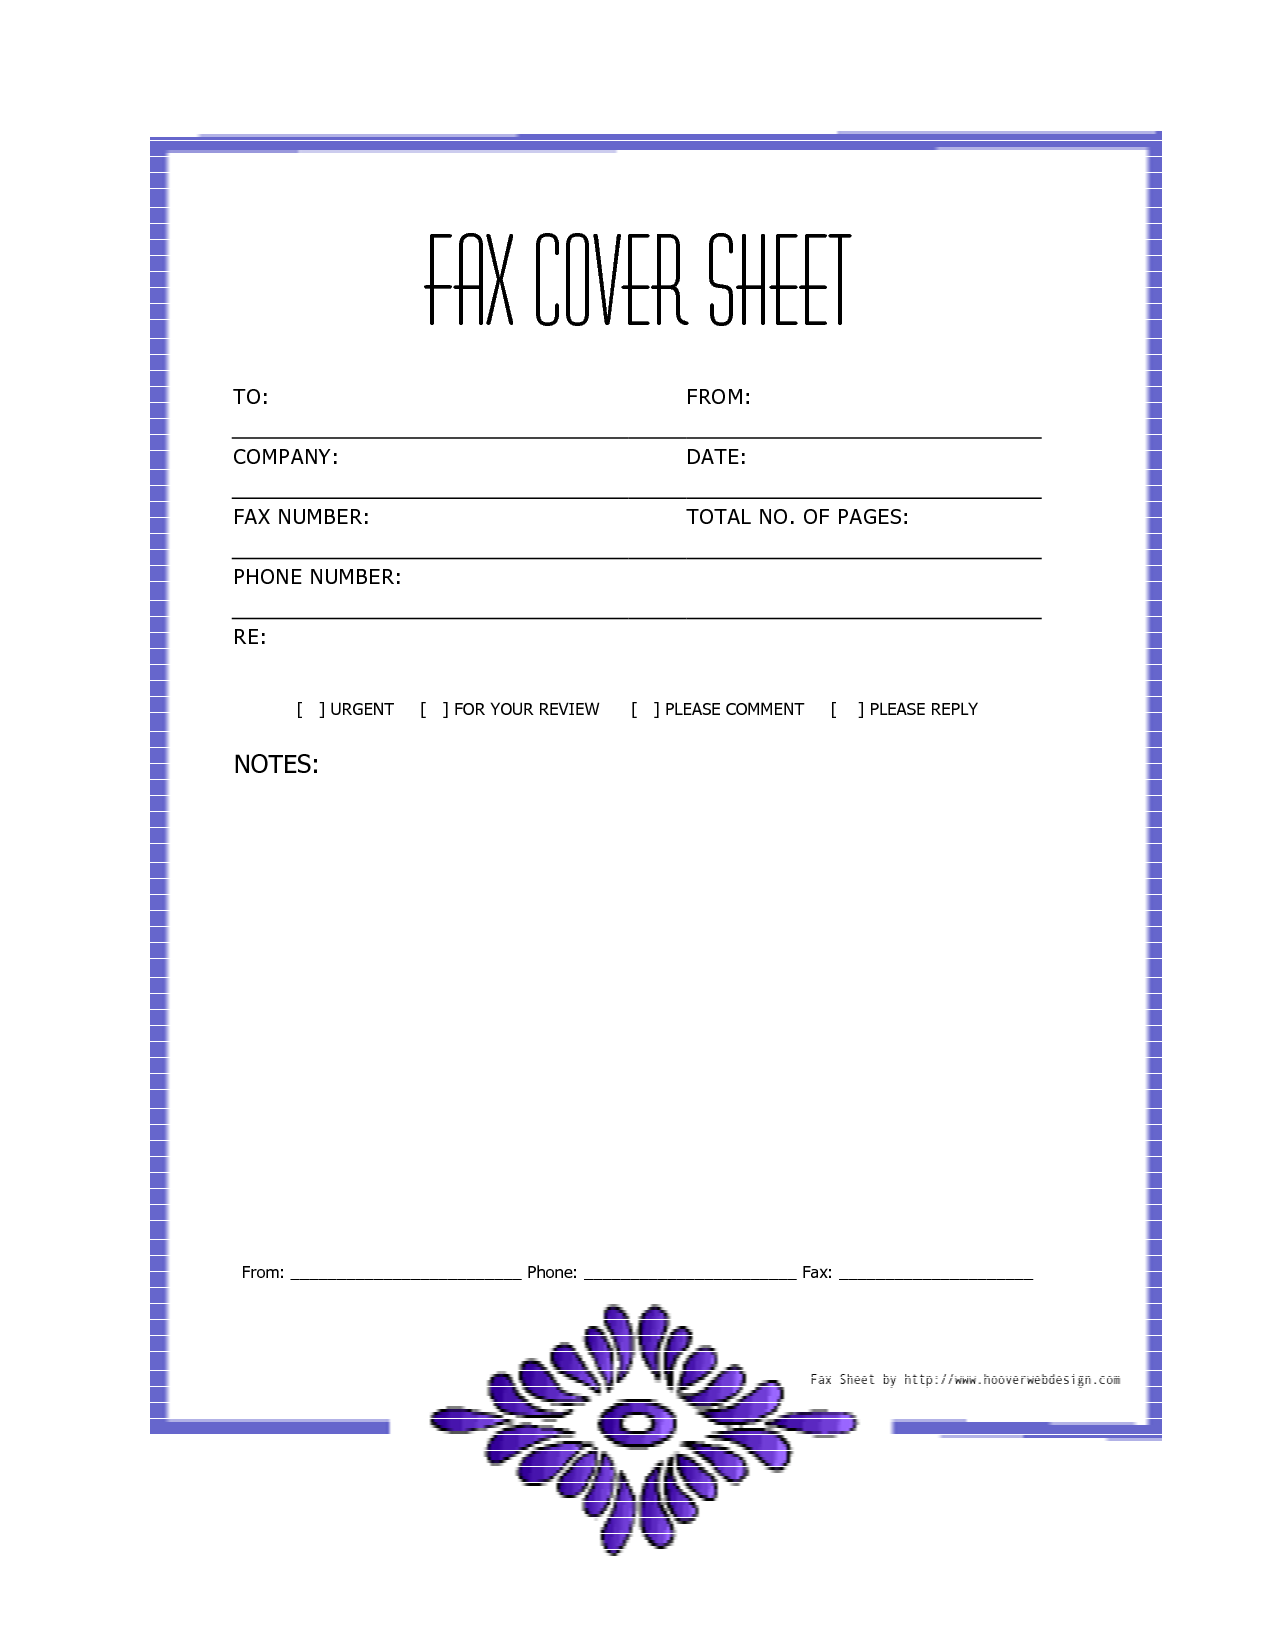 Free Cover Fax Sheet For Microsoft Office, Google Docs, U0026 Adobe PDF | Cover  Sheet For Carolina Hospital | Pinterest | Google Docs, Microsoft Office And  ...